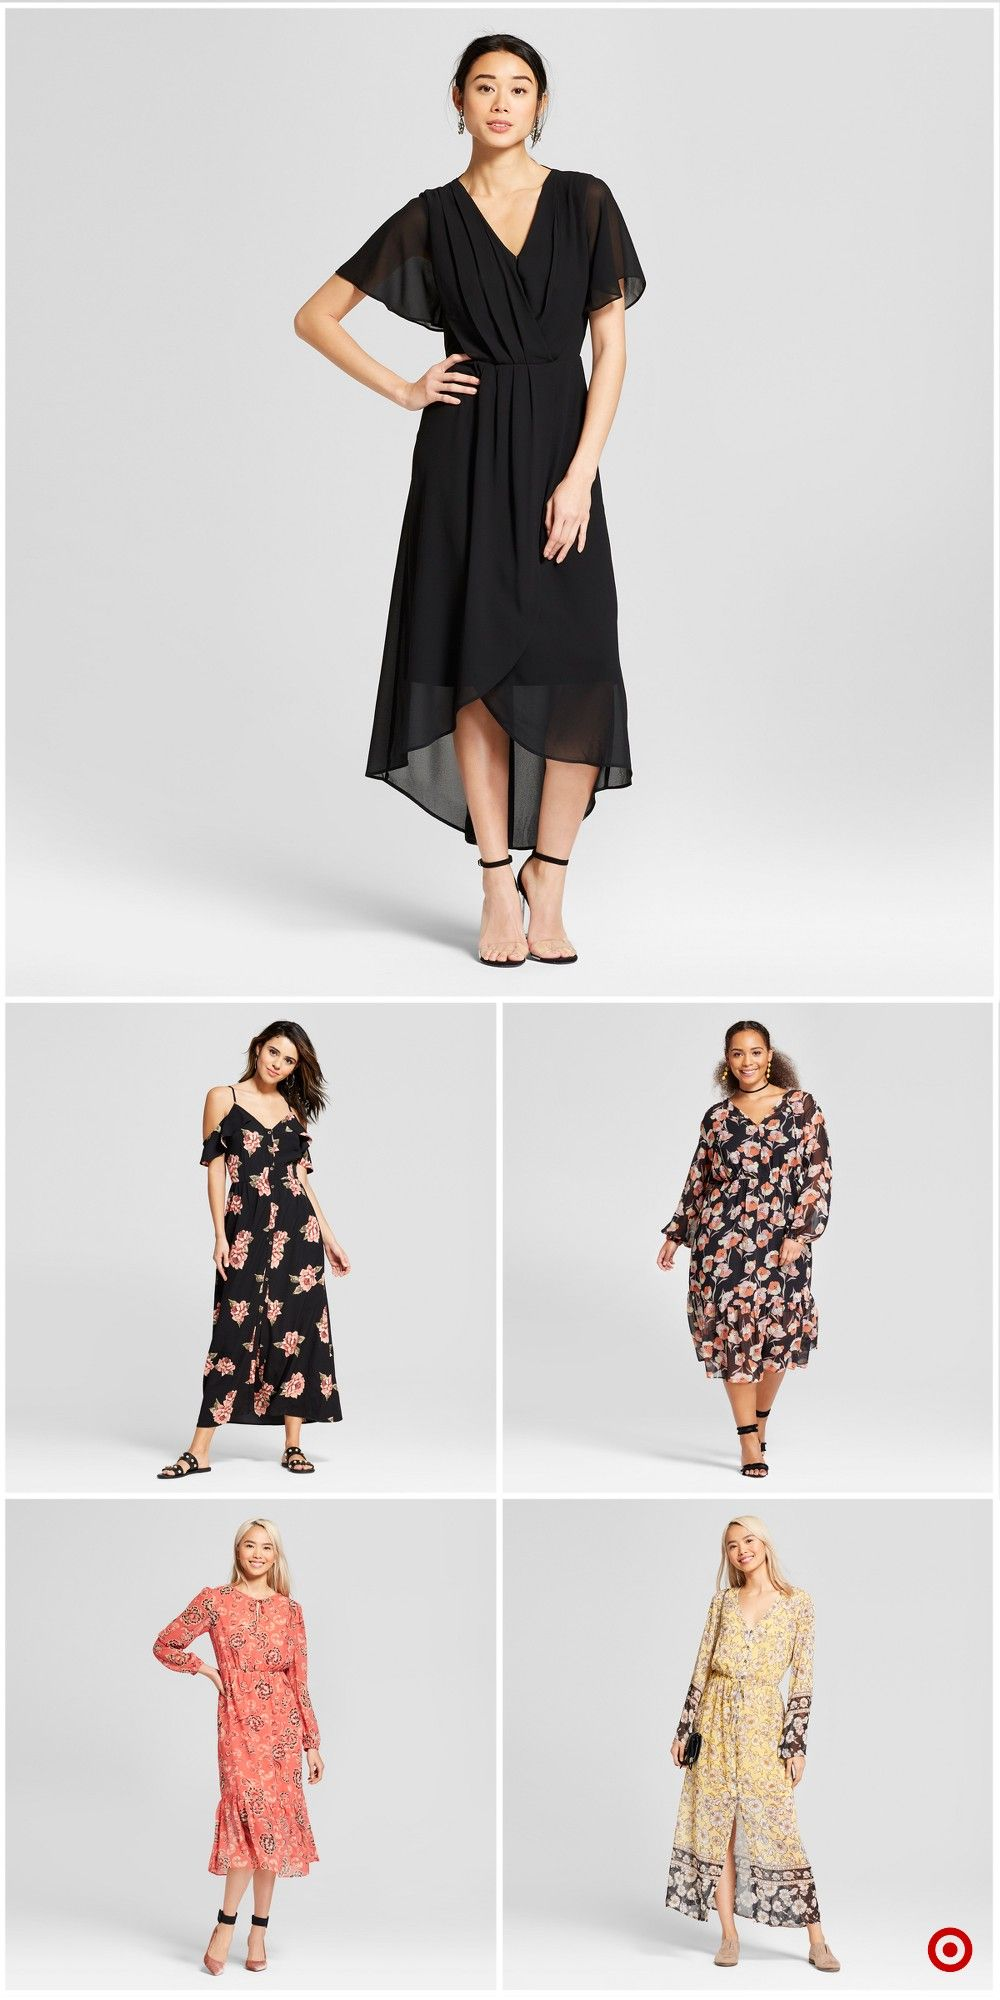 4c2bdbf5e0f Shop Target for maxi dresses you will love at great low prices. Free  shipping on orders of  35+ or free same-day pick-up in store.